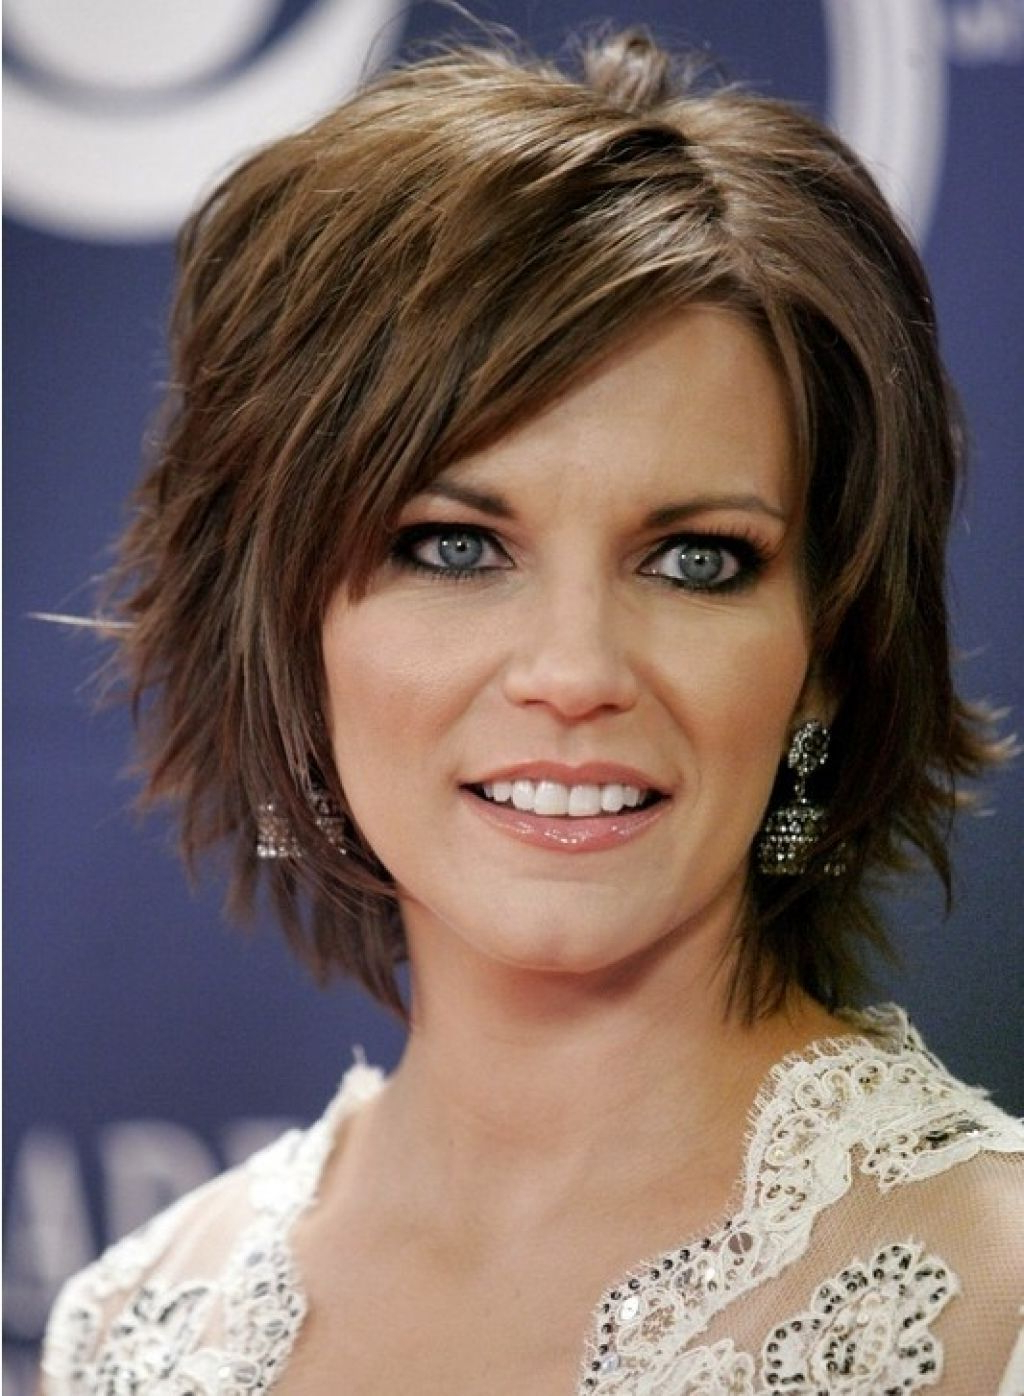 Short Layered Bob Short Layered Bob Hairstyle With Bangs Inside Most Recent A Very Short Layered Bob Hairstyles (View 5 of 20)